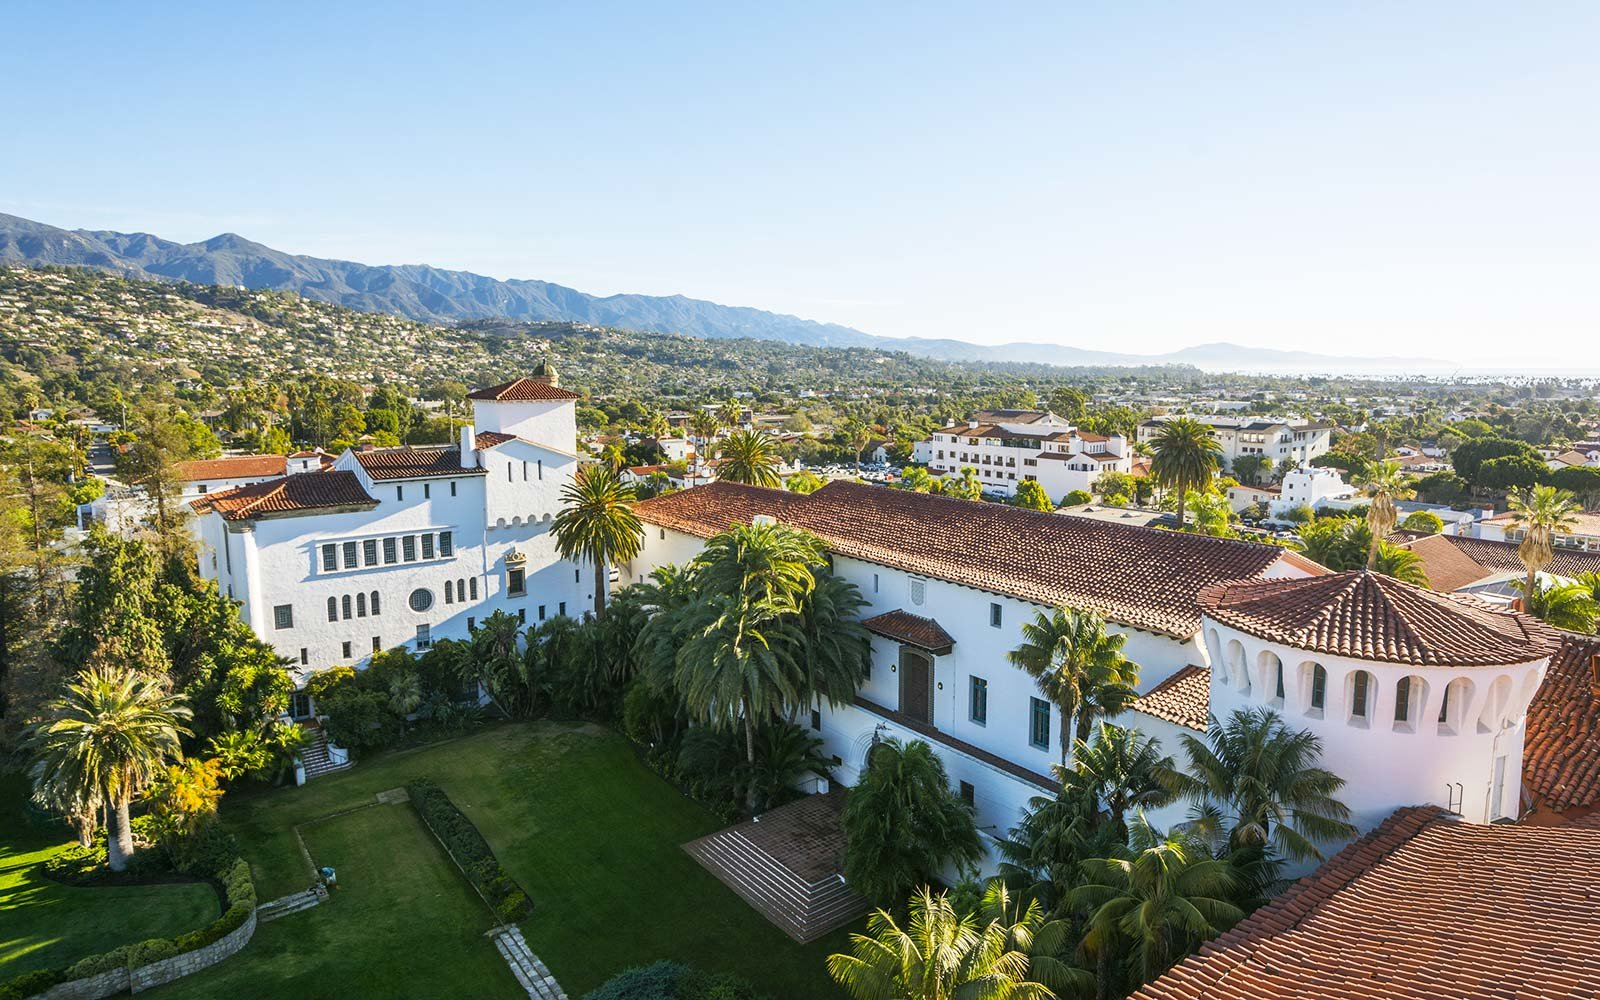 California, Santa Barbara, County Courthouse